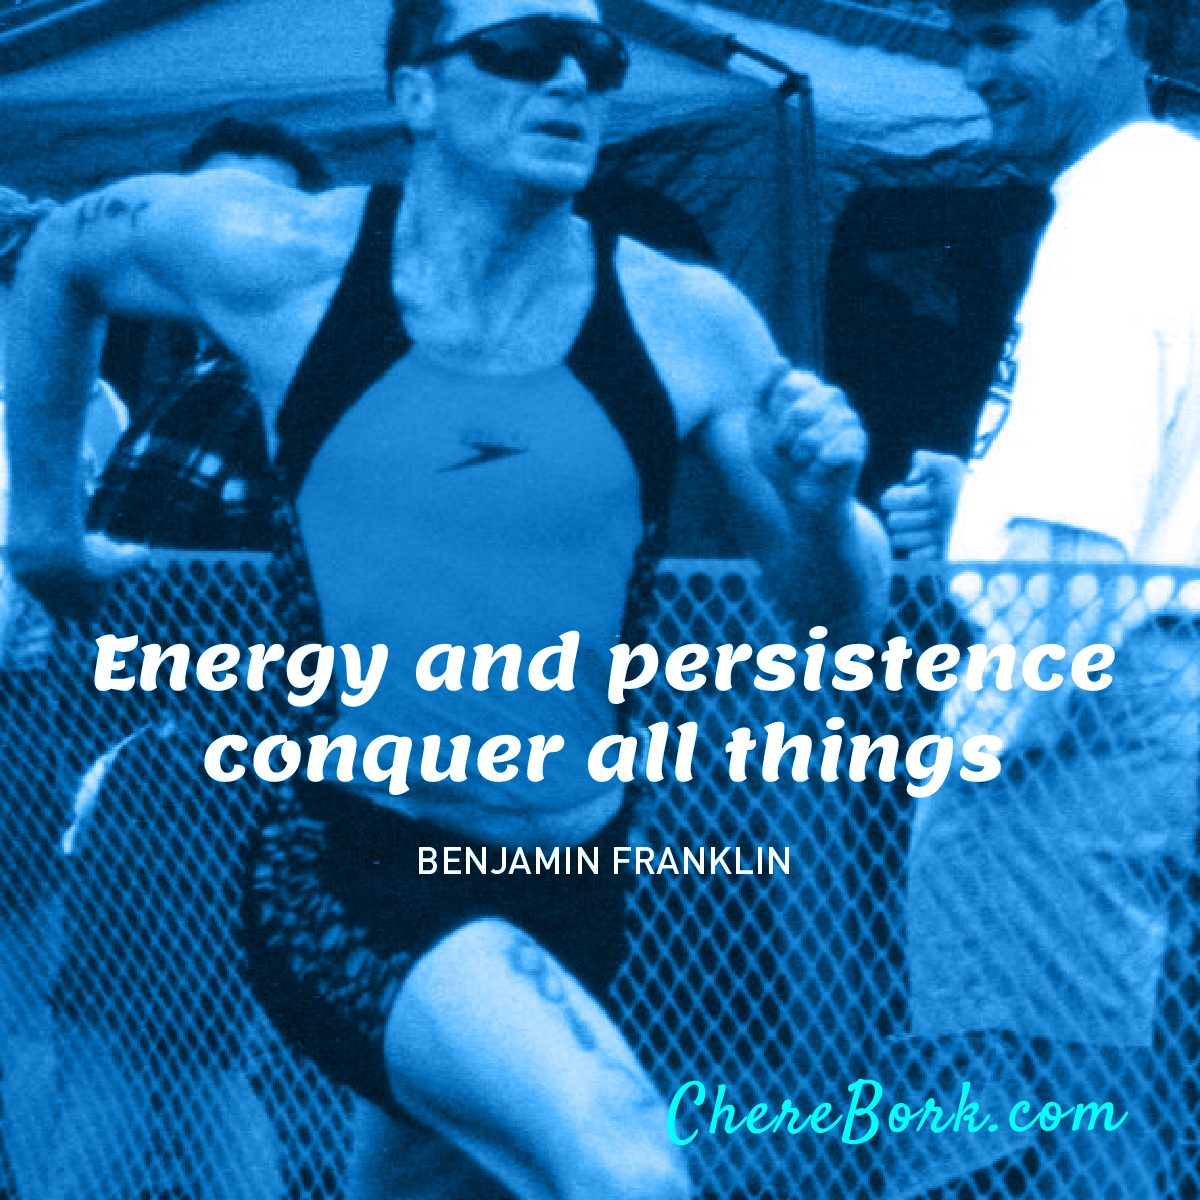 Energy and persistence conquer all things. -Benjamin Franklin